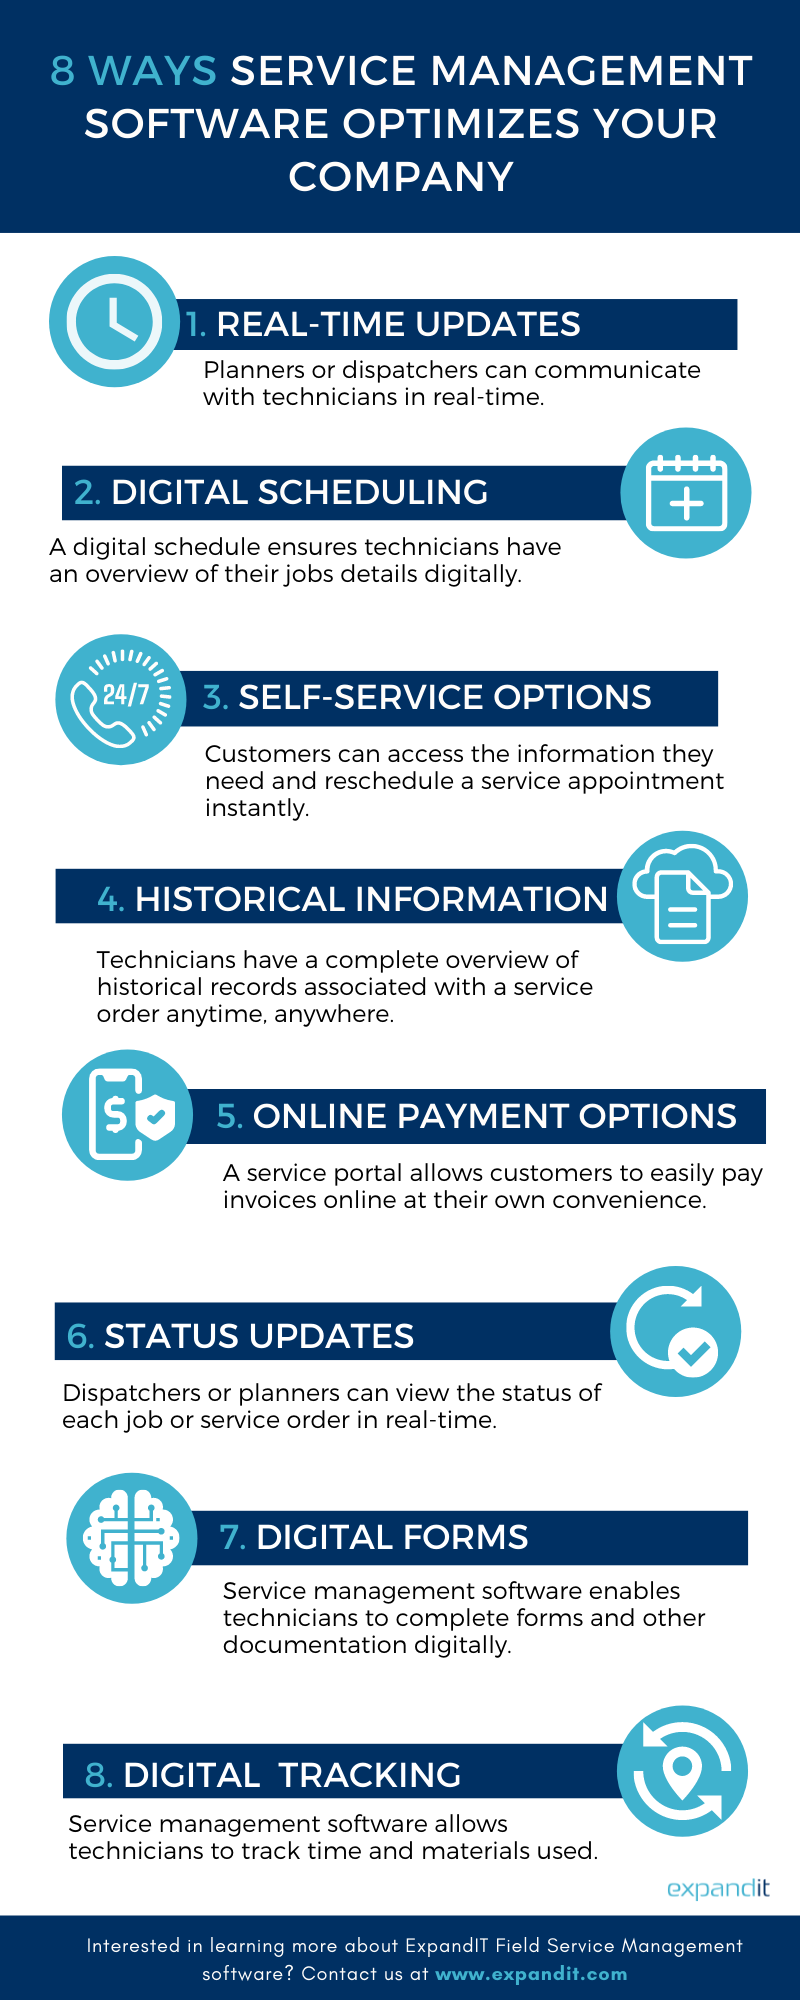 infographic on how to optimize service companies